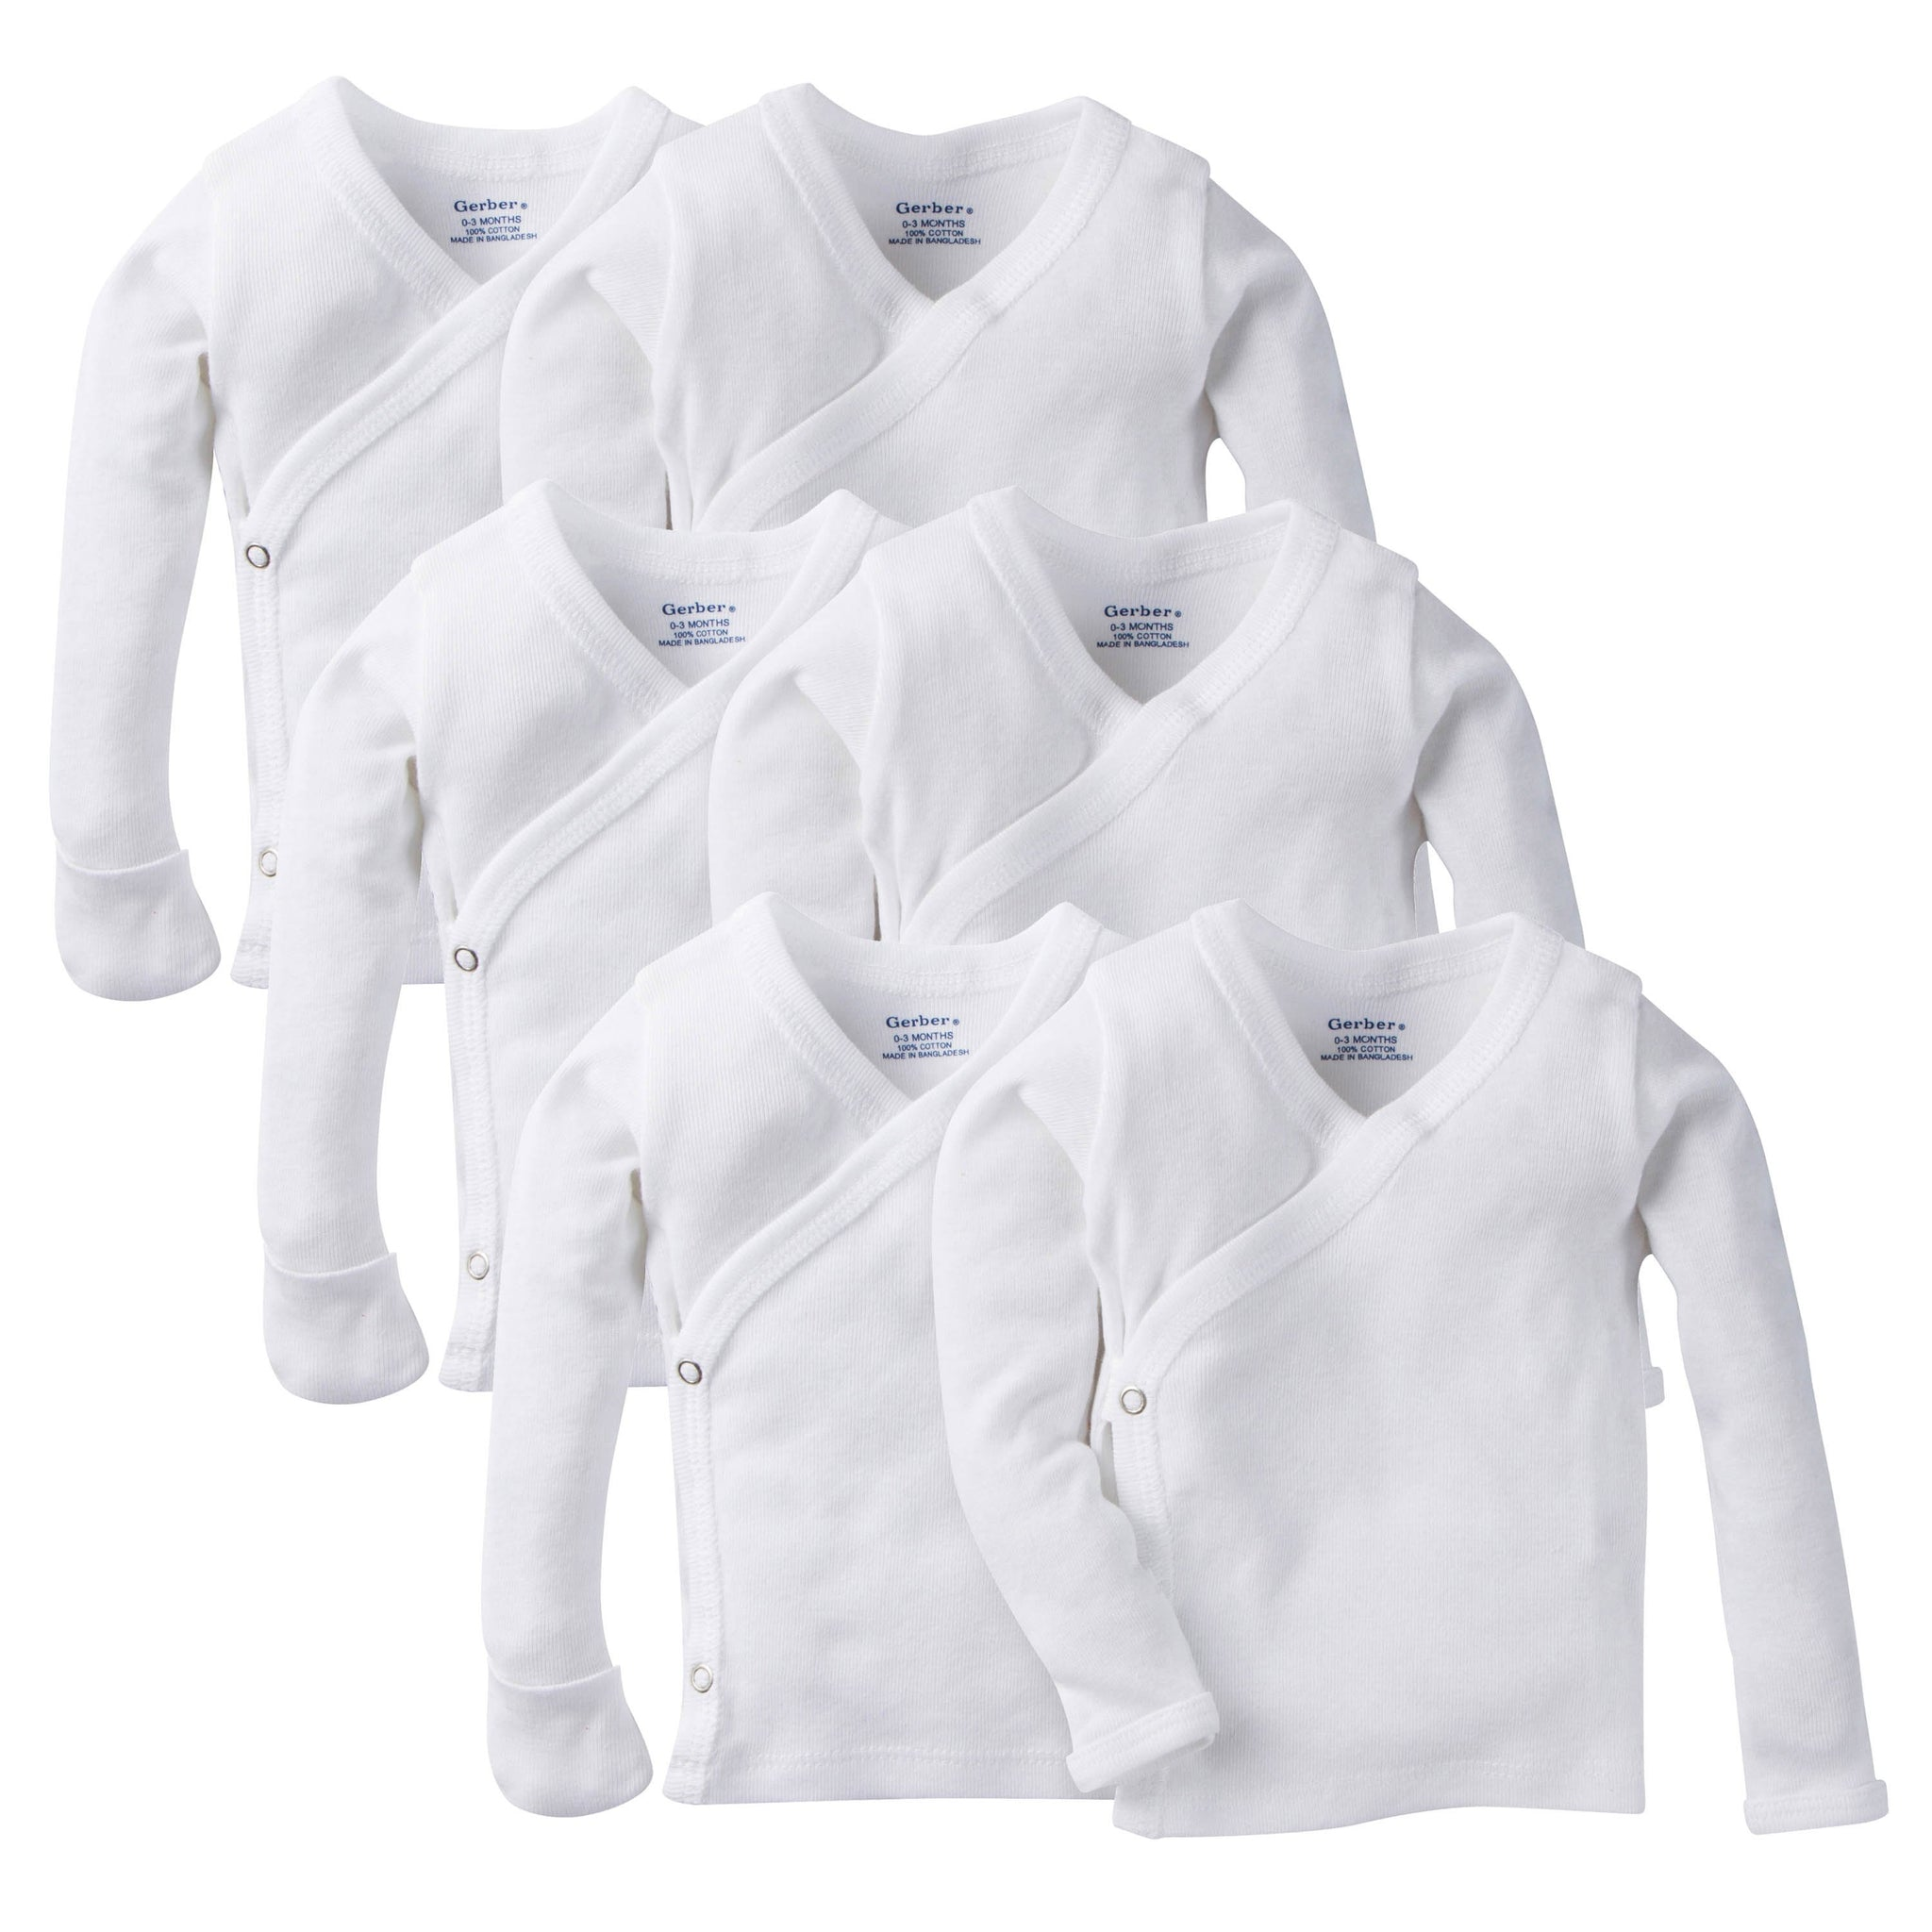 6-Pack White Long-Sleeve Side-Snap Mitten-Cuff Shirts